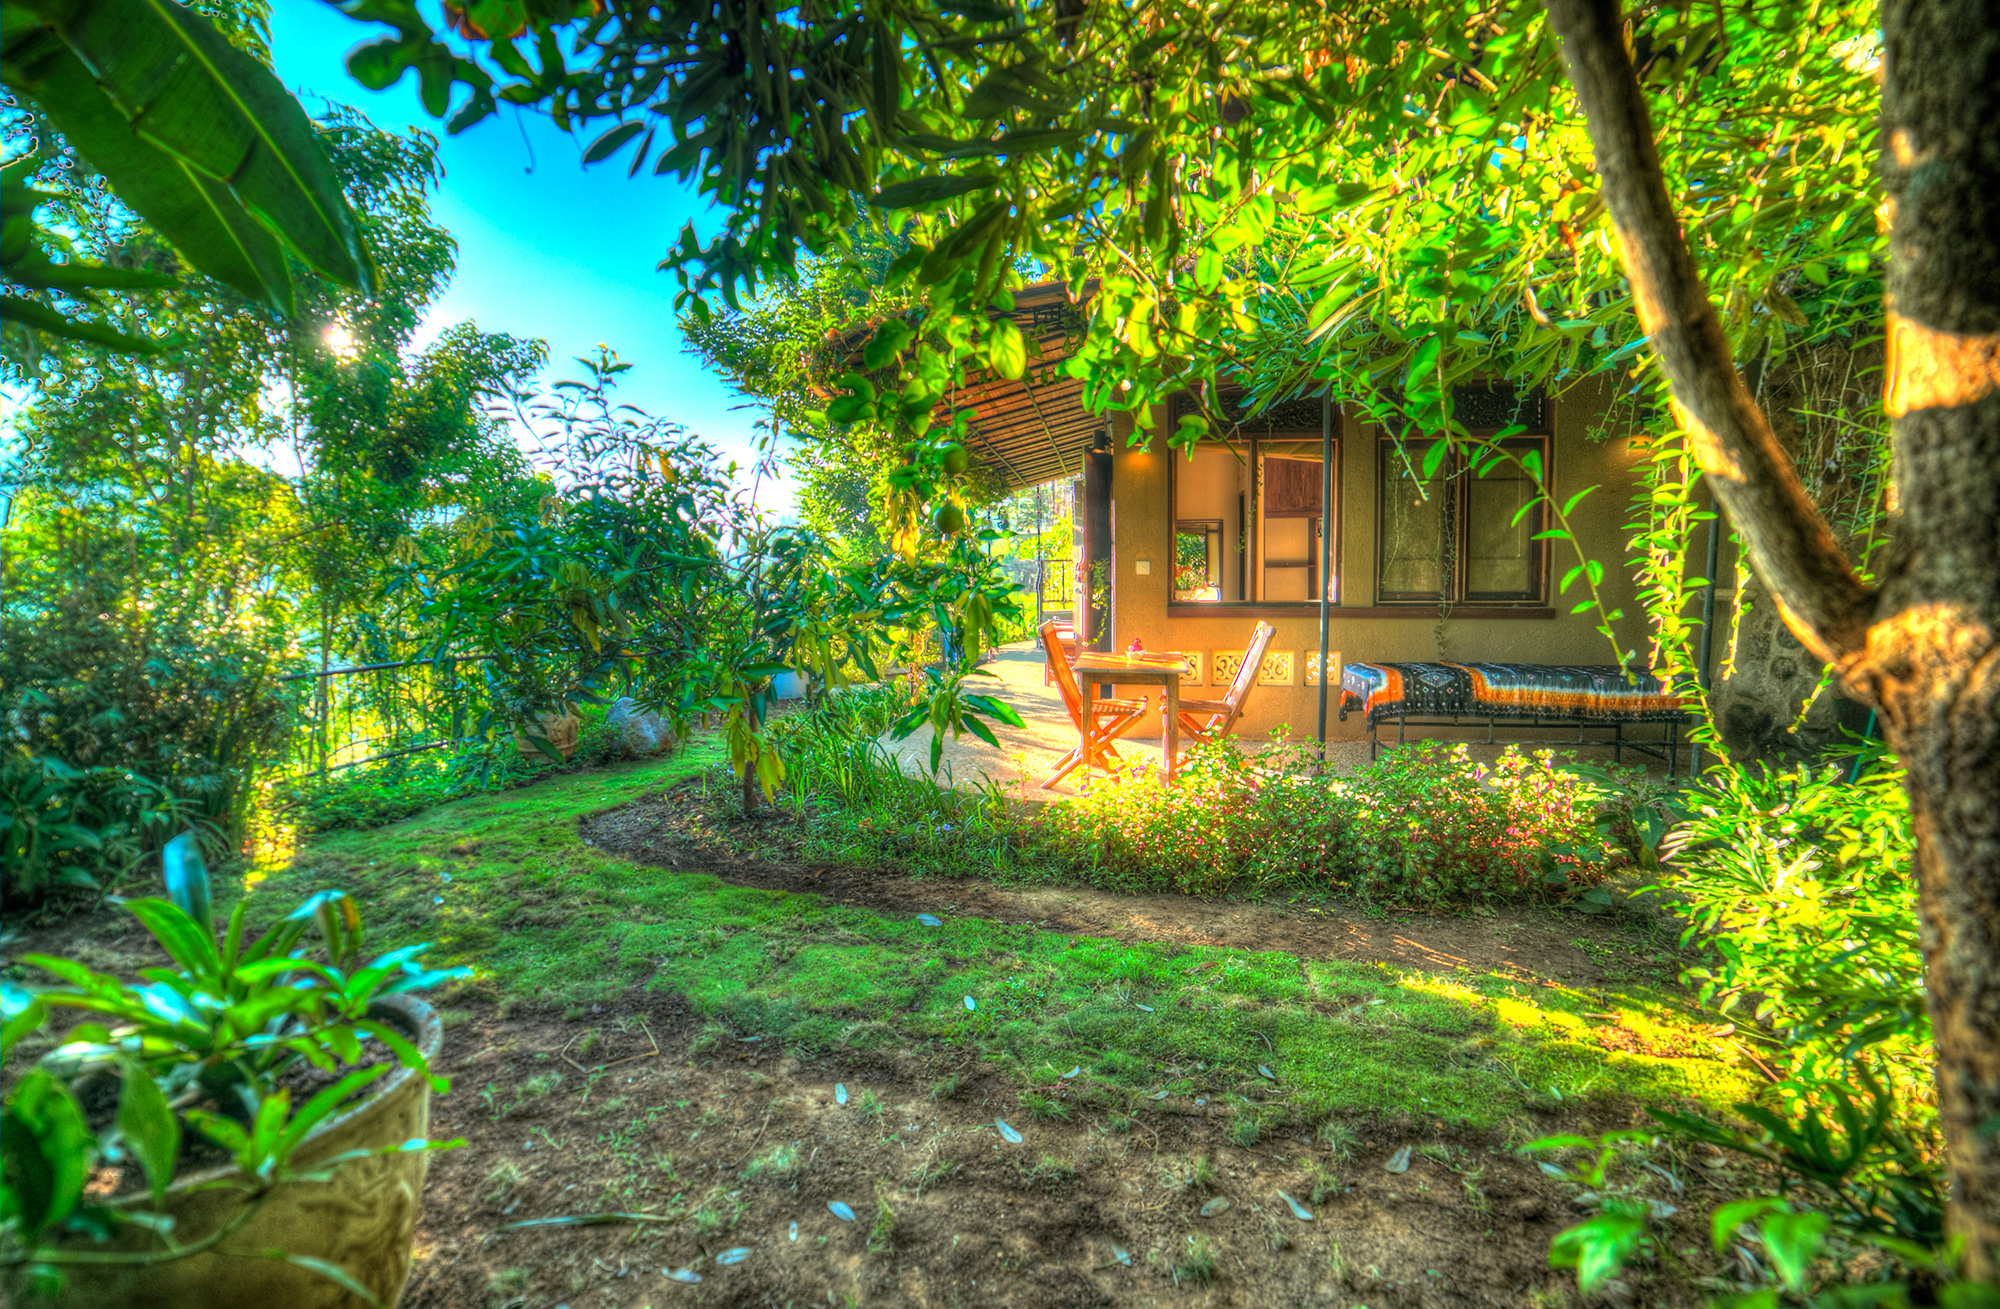 474A2957_8_9_tonemapped